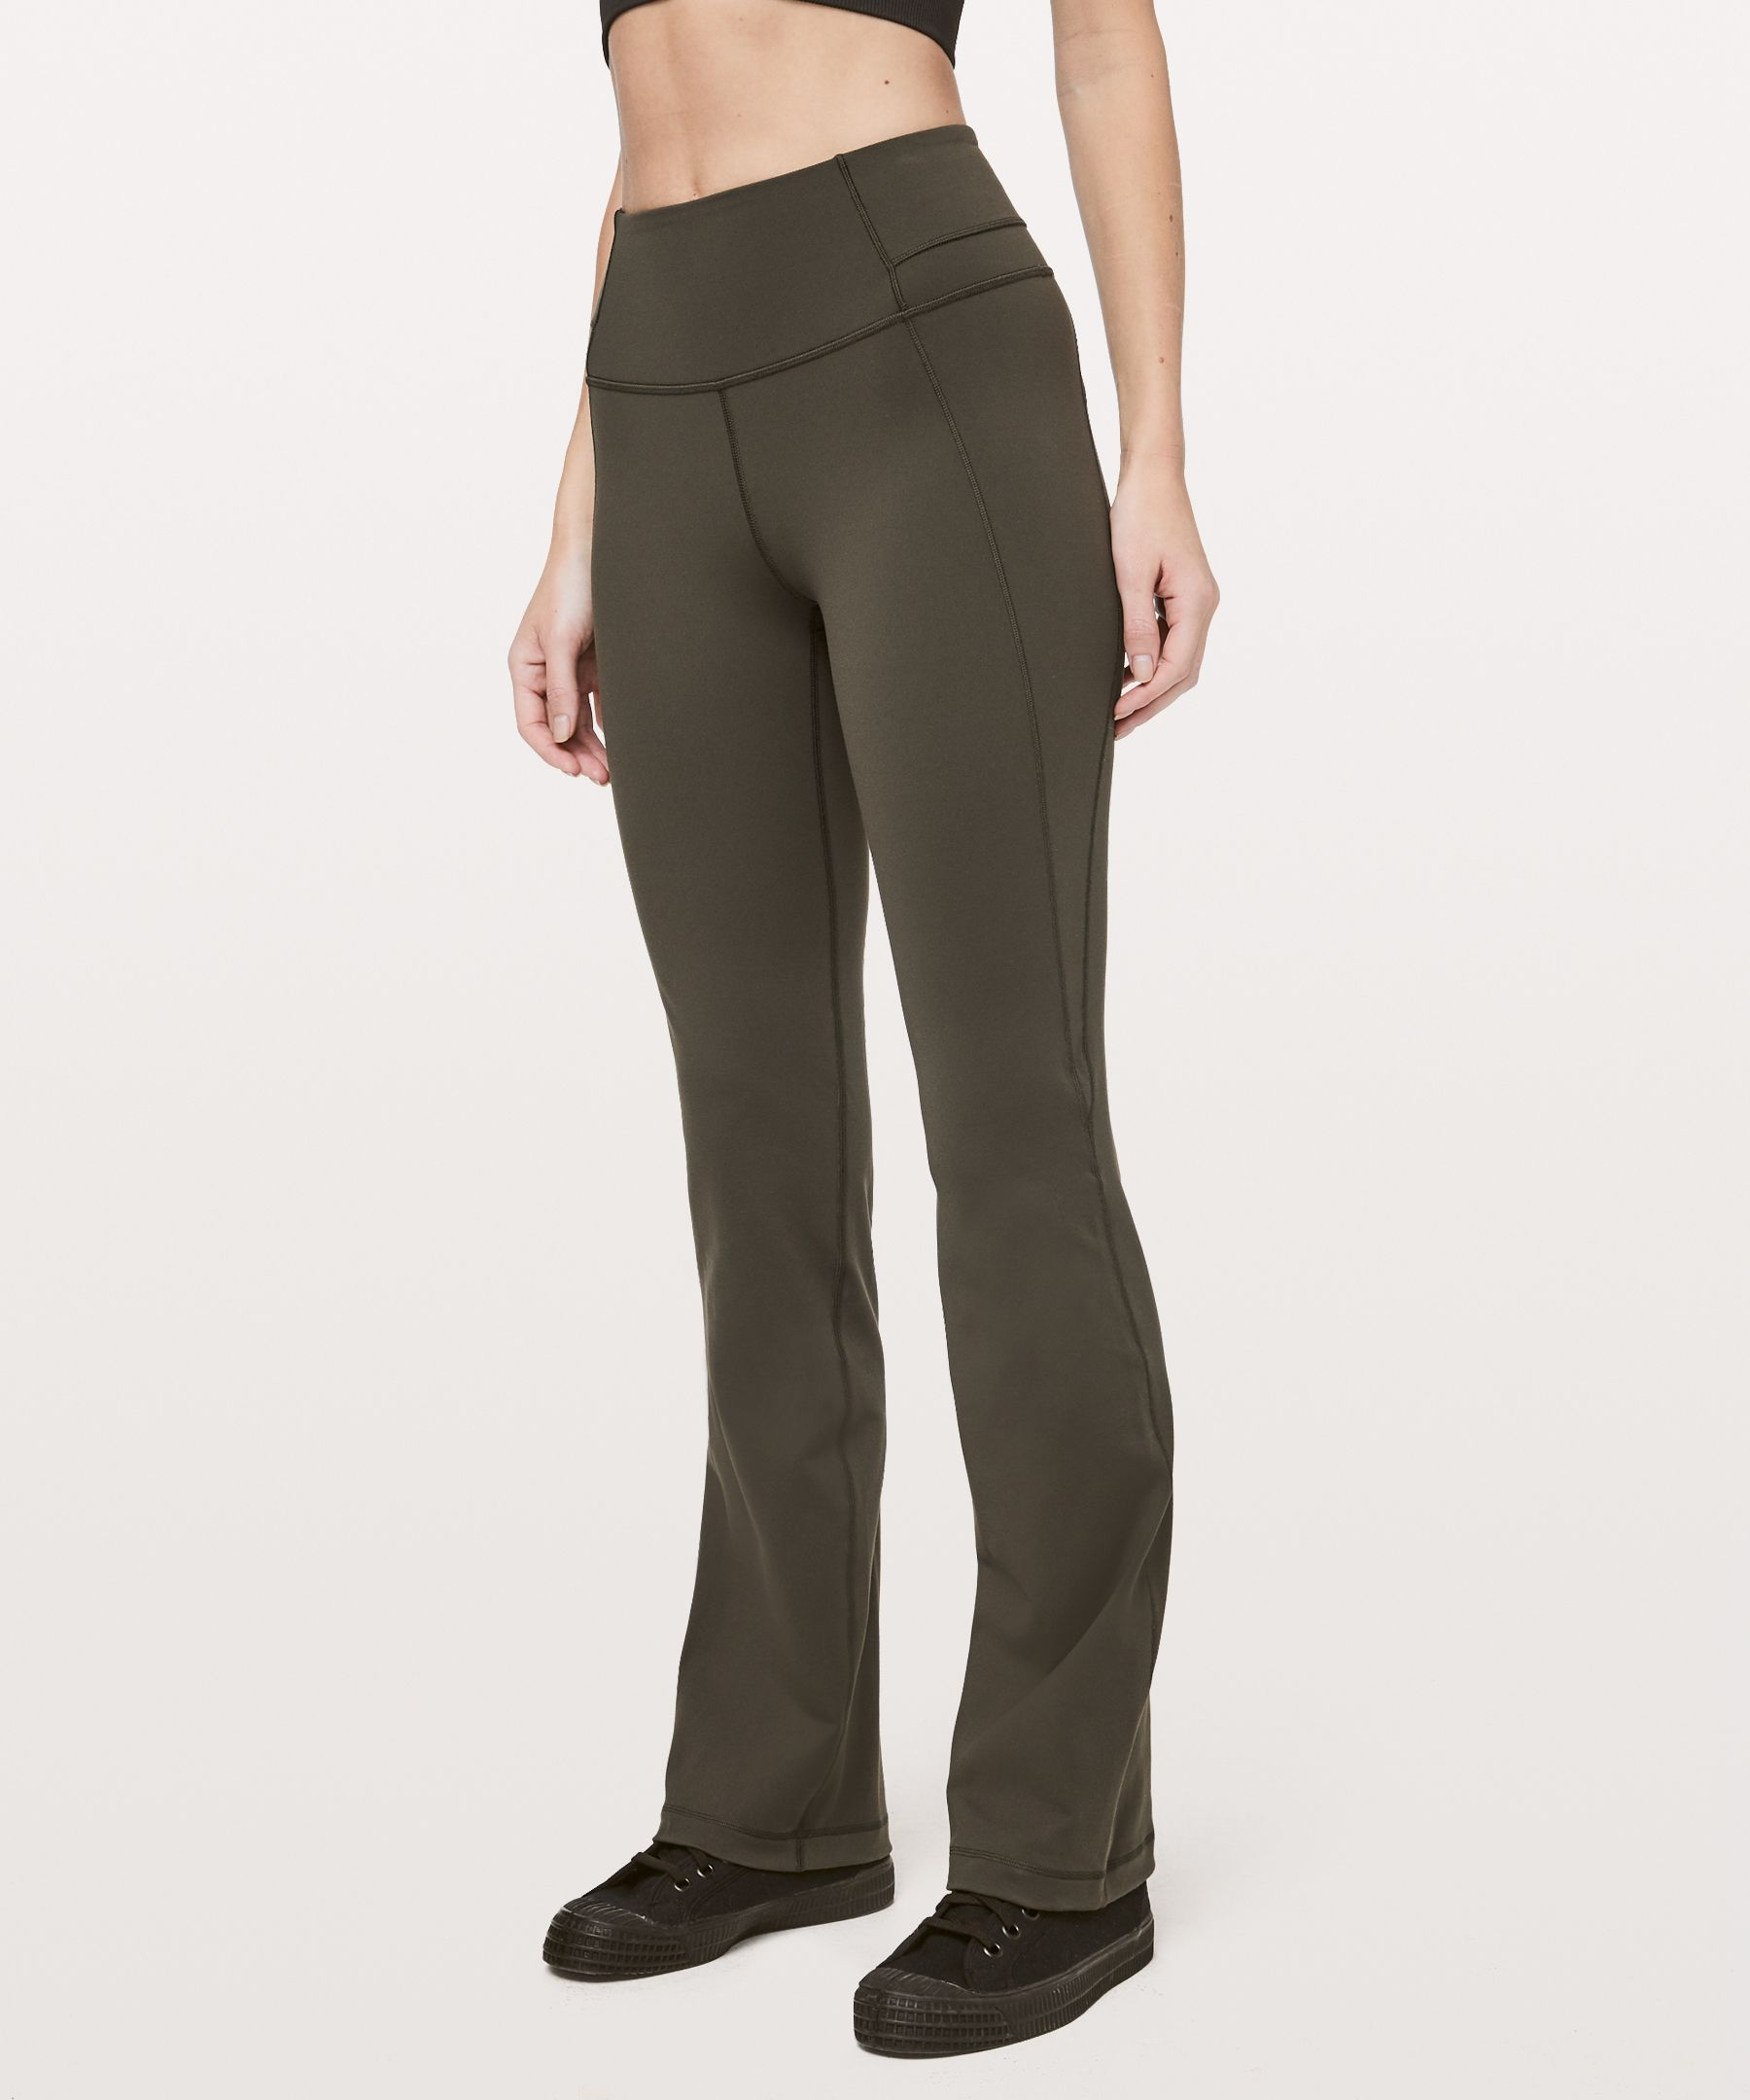 The return of a coveted  classic—these high-rise,  bootcut pants are perfect for  your practice (and your  post-practice look).